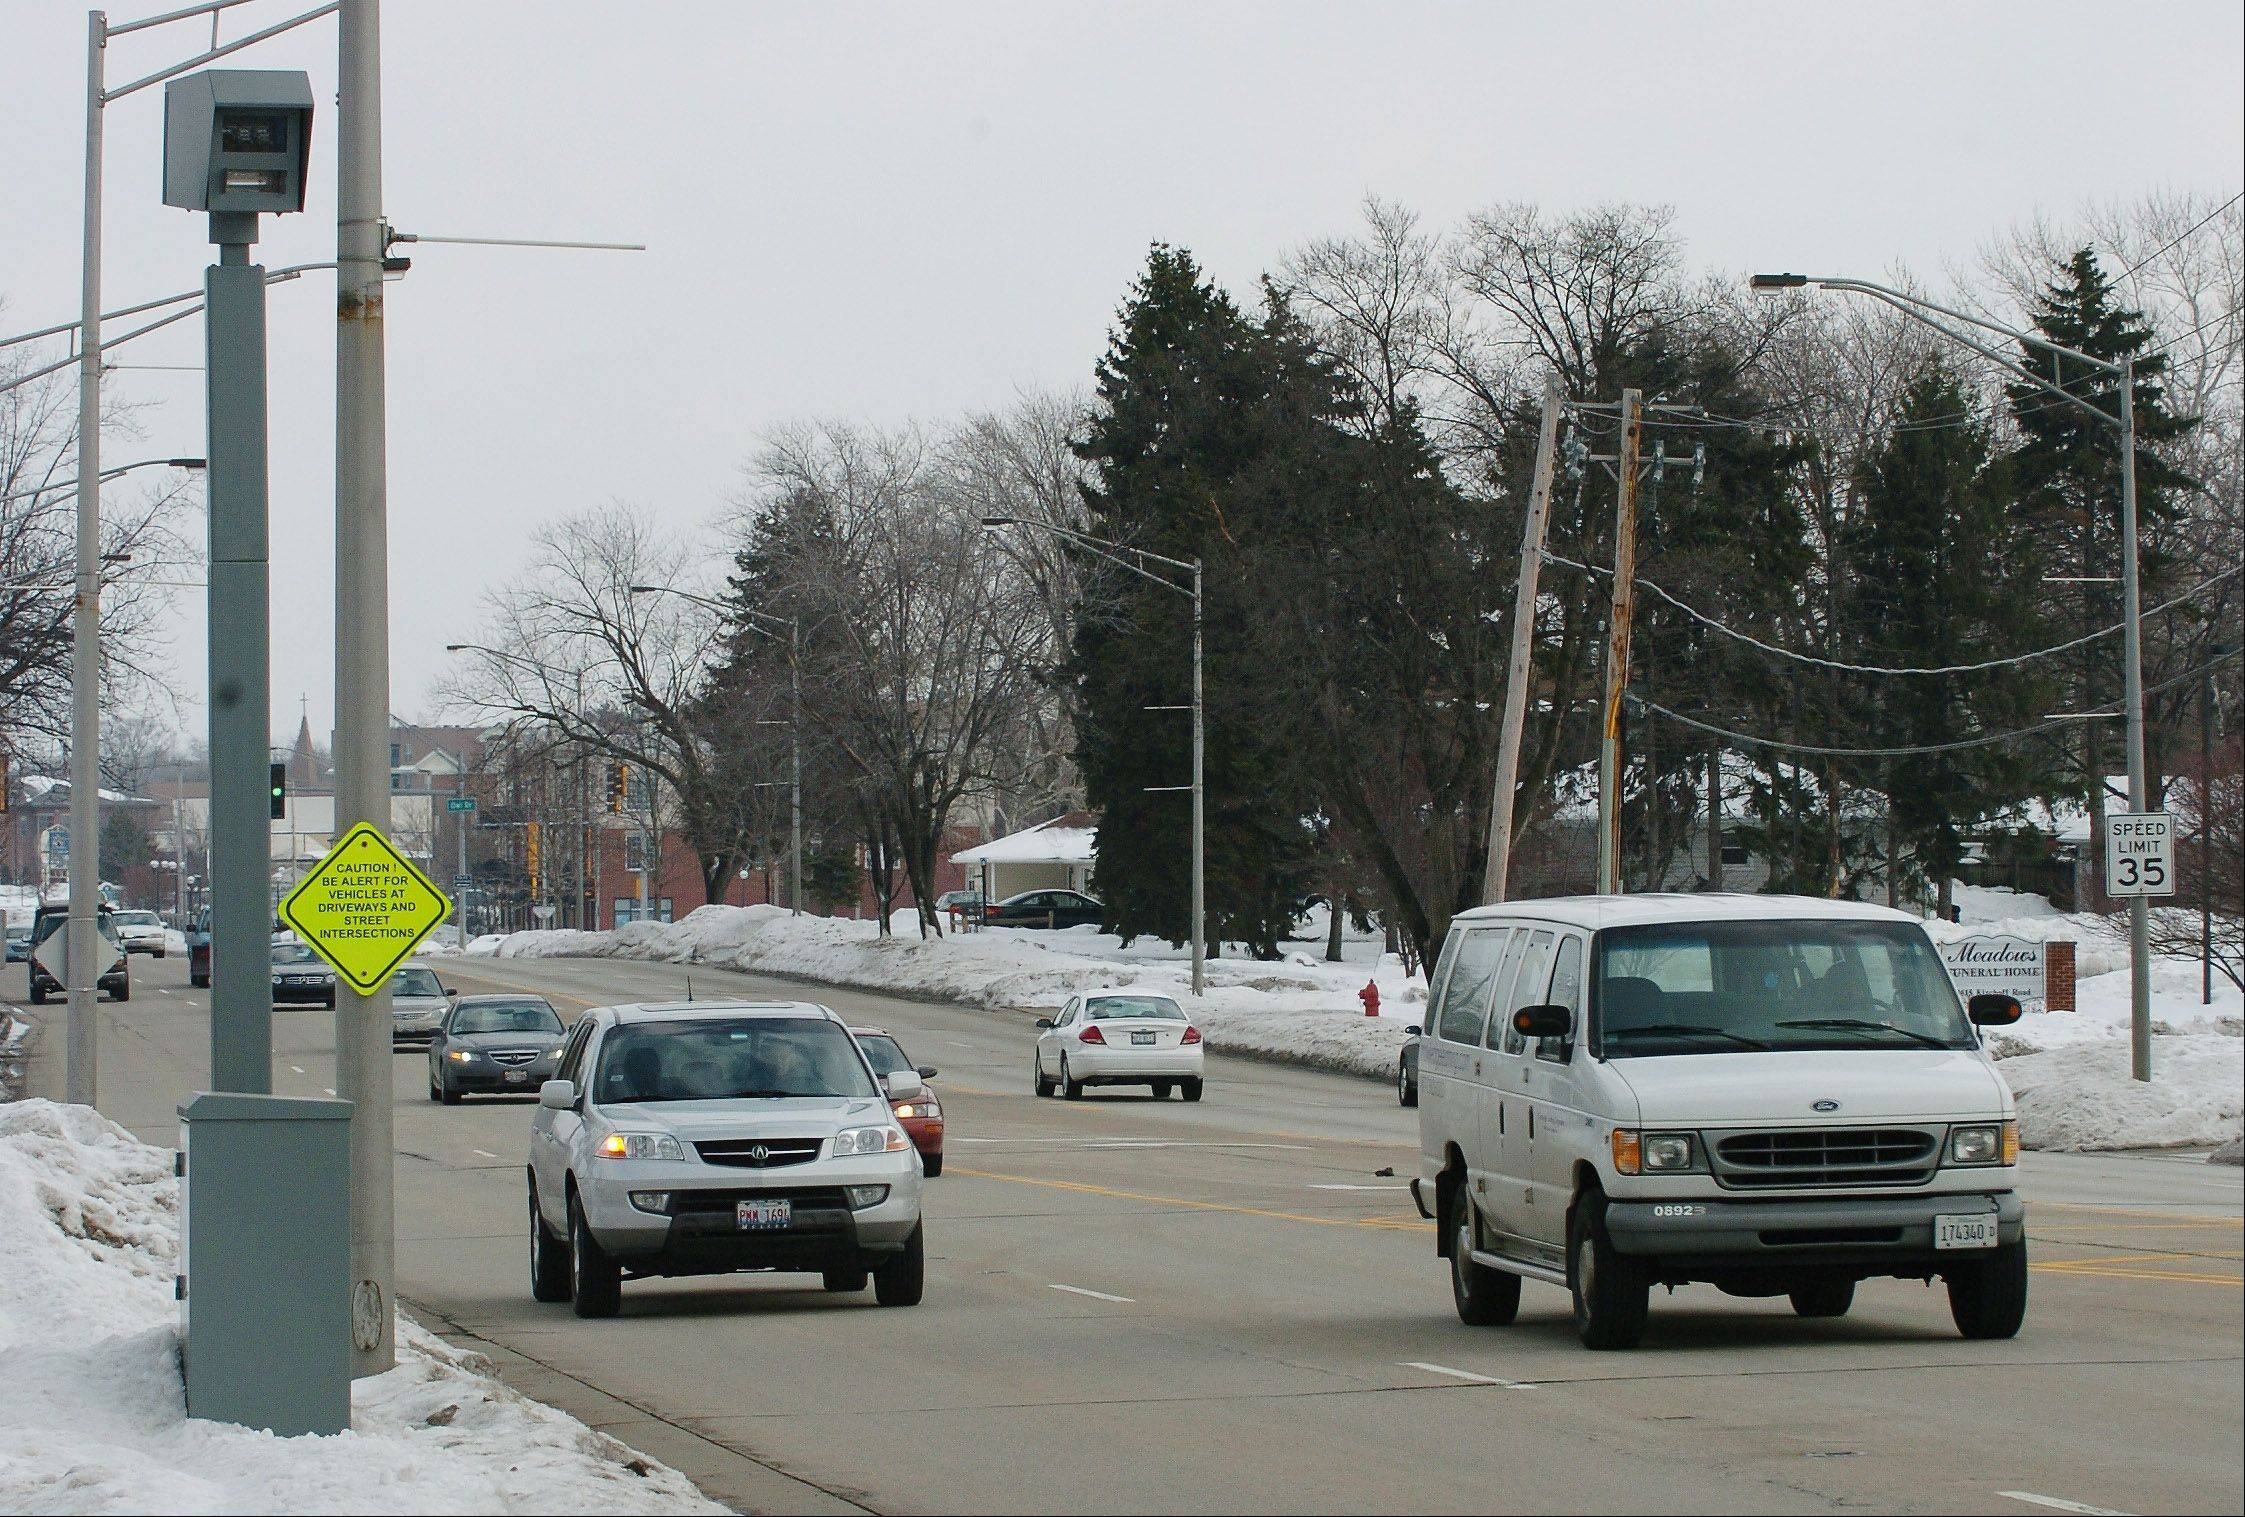 Red-light cameras are prevalent throughout the suburbs. Will speed cameras be next?